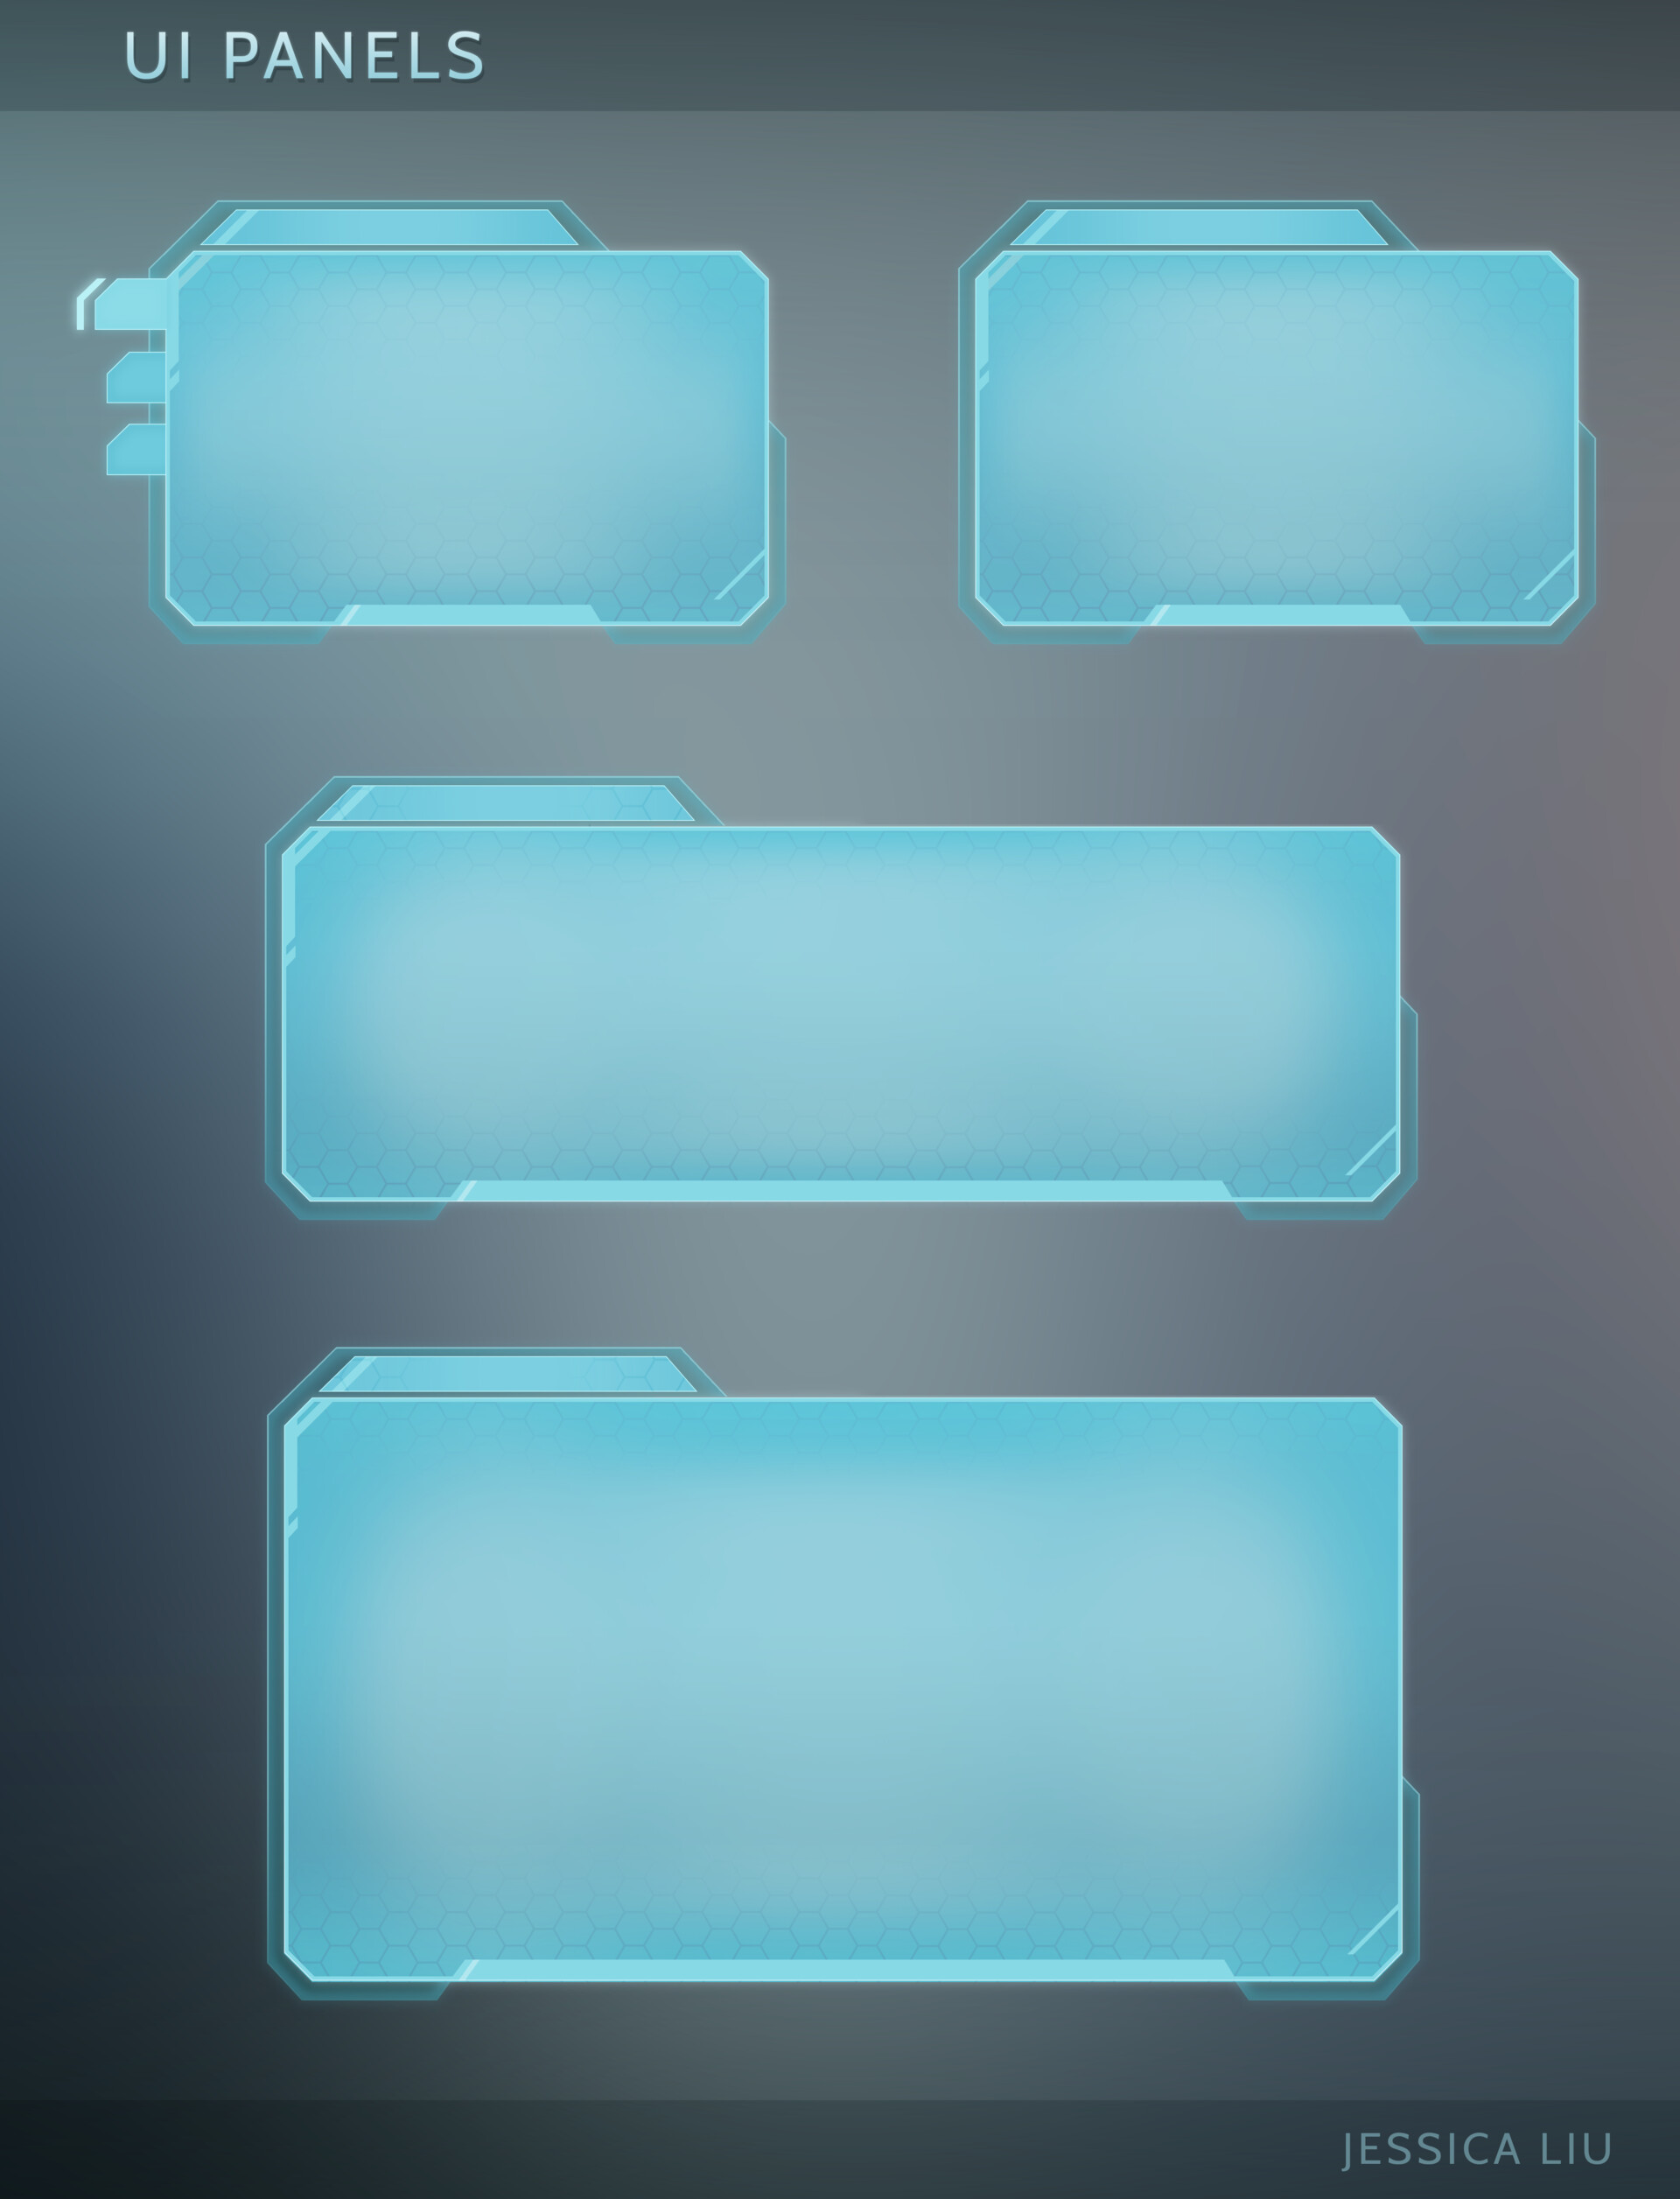 Varying UI panel sizes